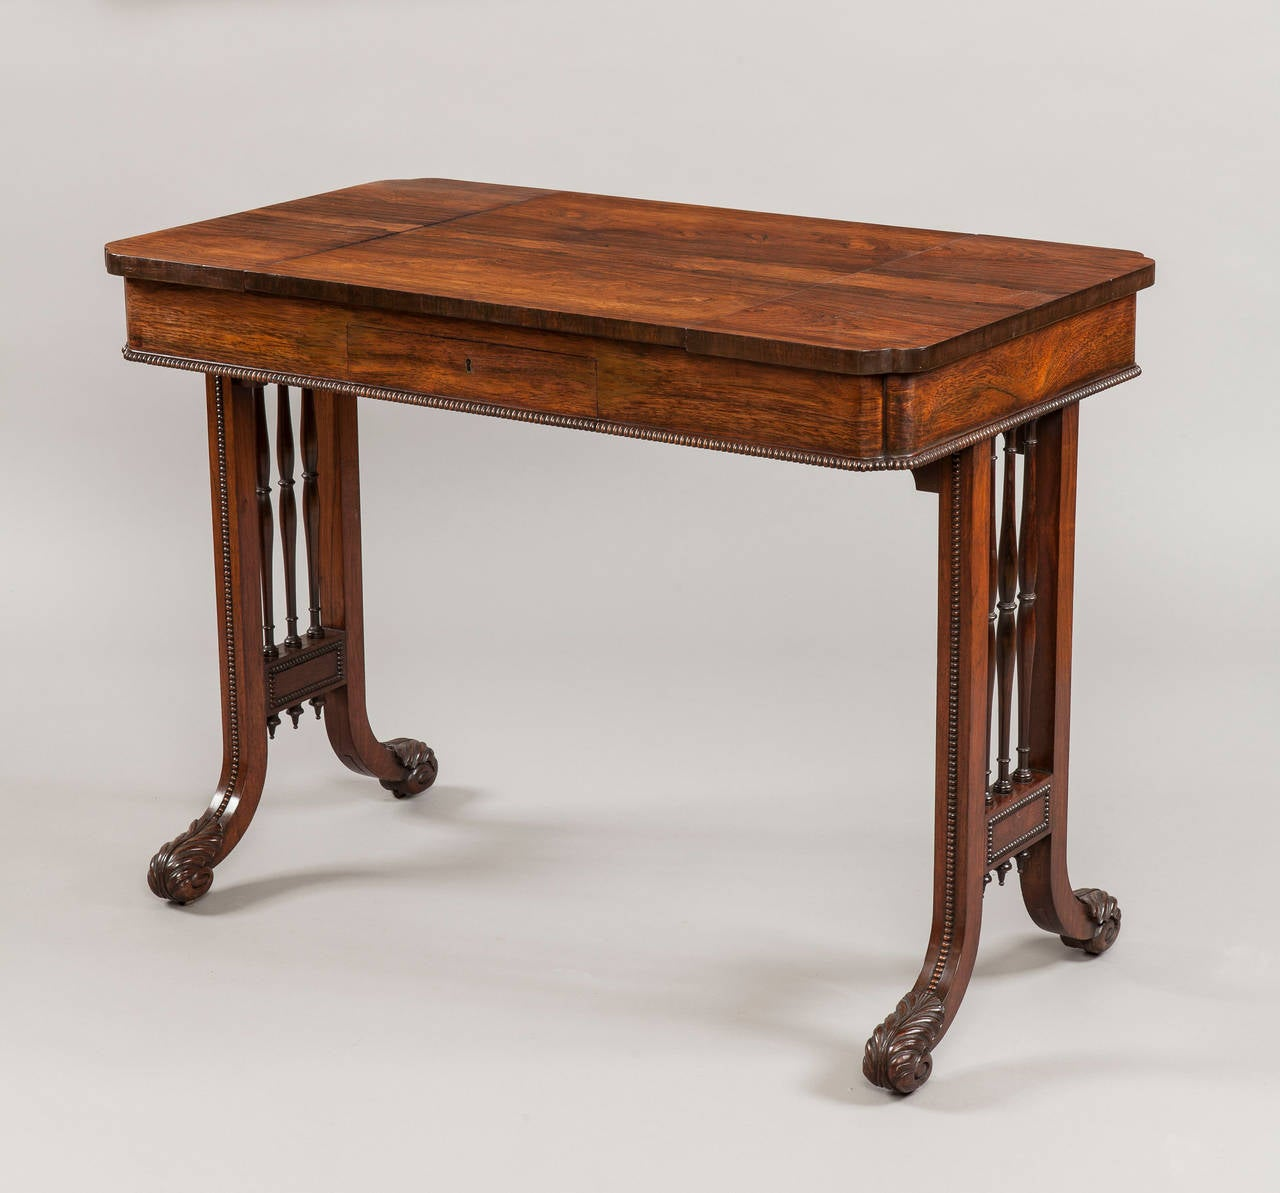 Constructed in a finely figured goncalo alves; the end supports having square uprights, each enclosing three tapering and turned 'triple spindles', with 'running pearl' adornments, and terminating in incurving carved scroll toes; the platform having